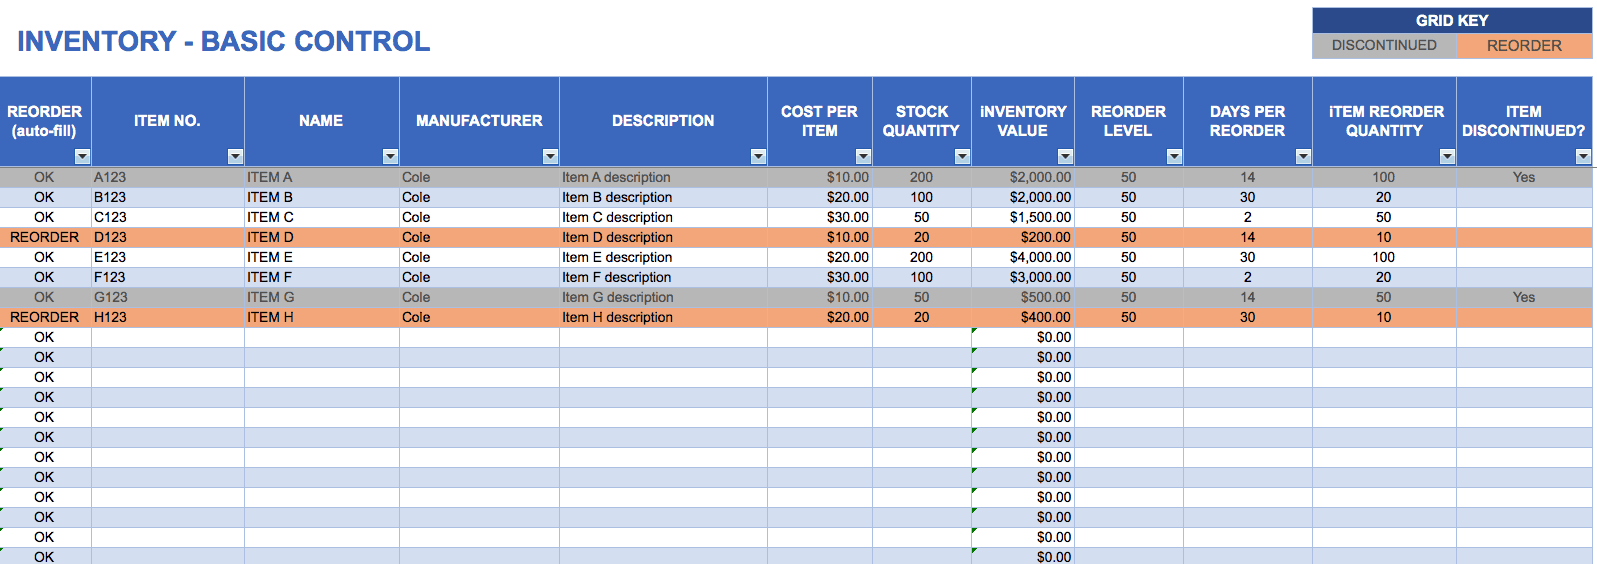 Free Excel Inventory Templates - Free stock ledger template